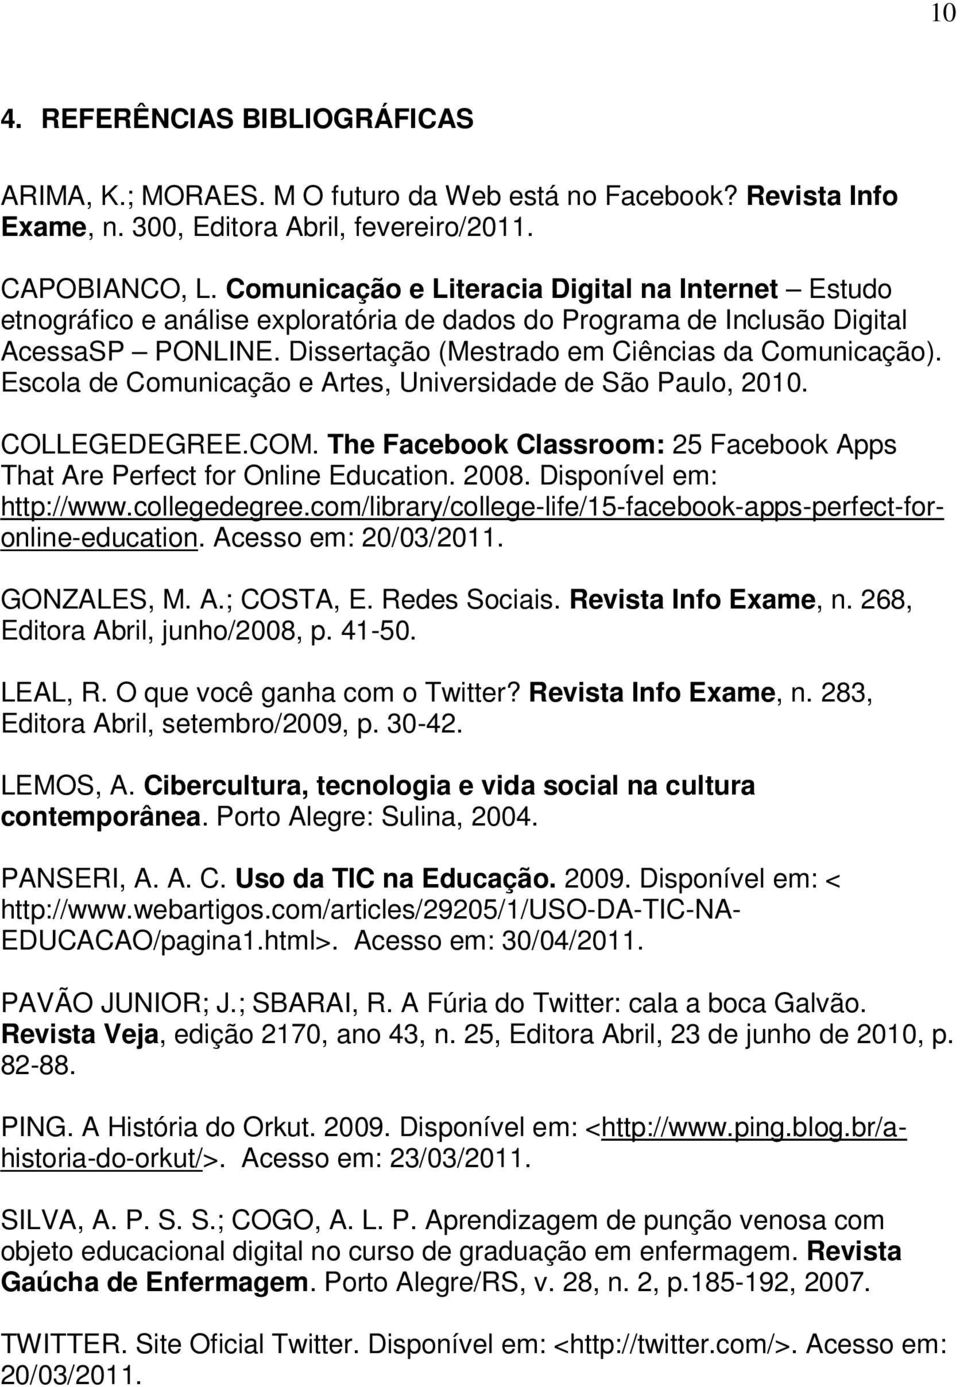 Escola de Comunicação e Artes, Universidade de São Paulo, 2010. COLLEGEDEGREE.COM. The Facebook Classroom: 25 Facebook Apps That Are Perfect for Online Education. 2008. Disponível em: http://www.